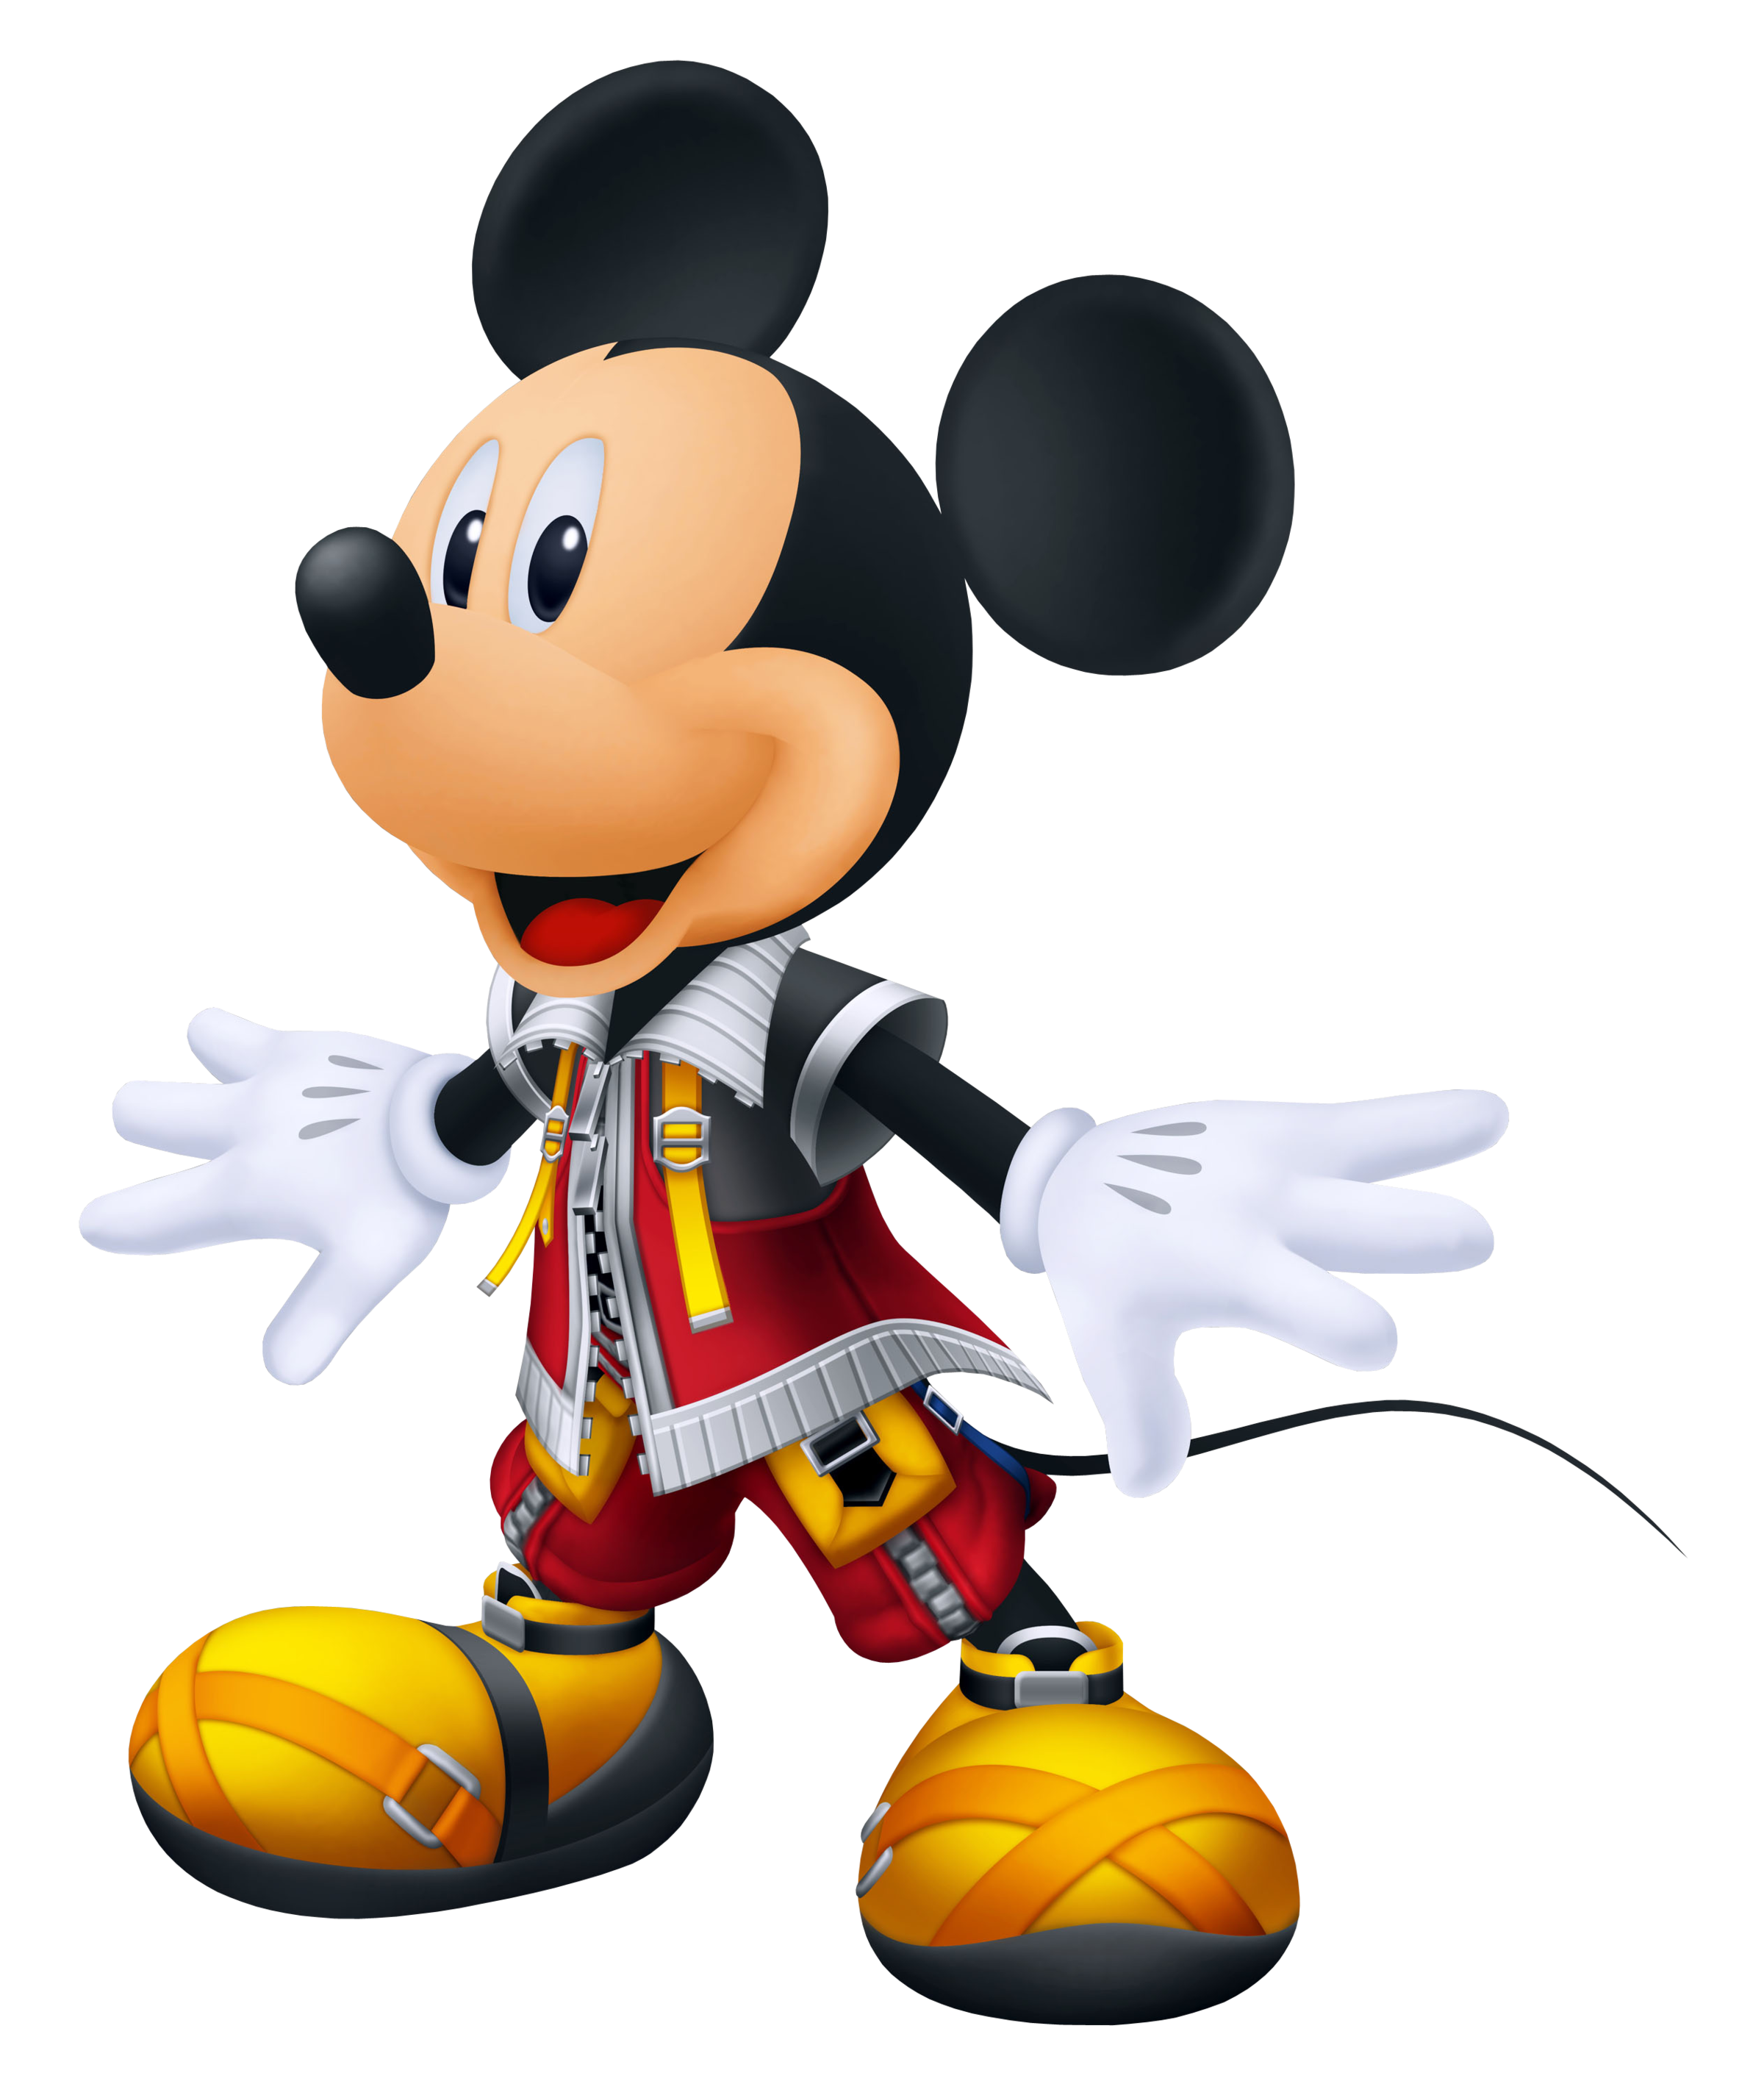 Kingdom hearts clipart banner library stock Kingdom hearts phone clipart - ClipartFox banner library stock